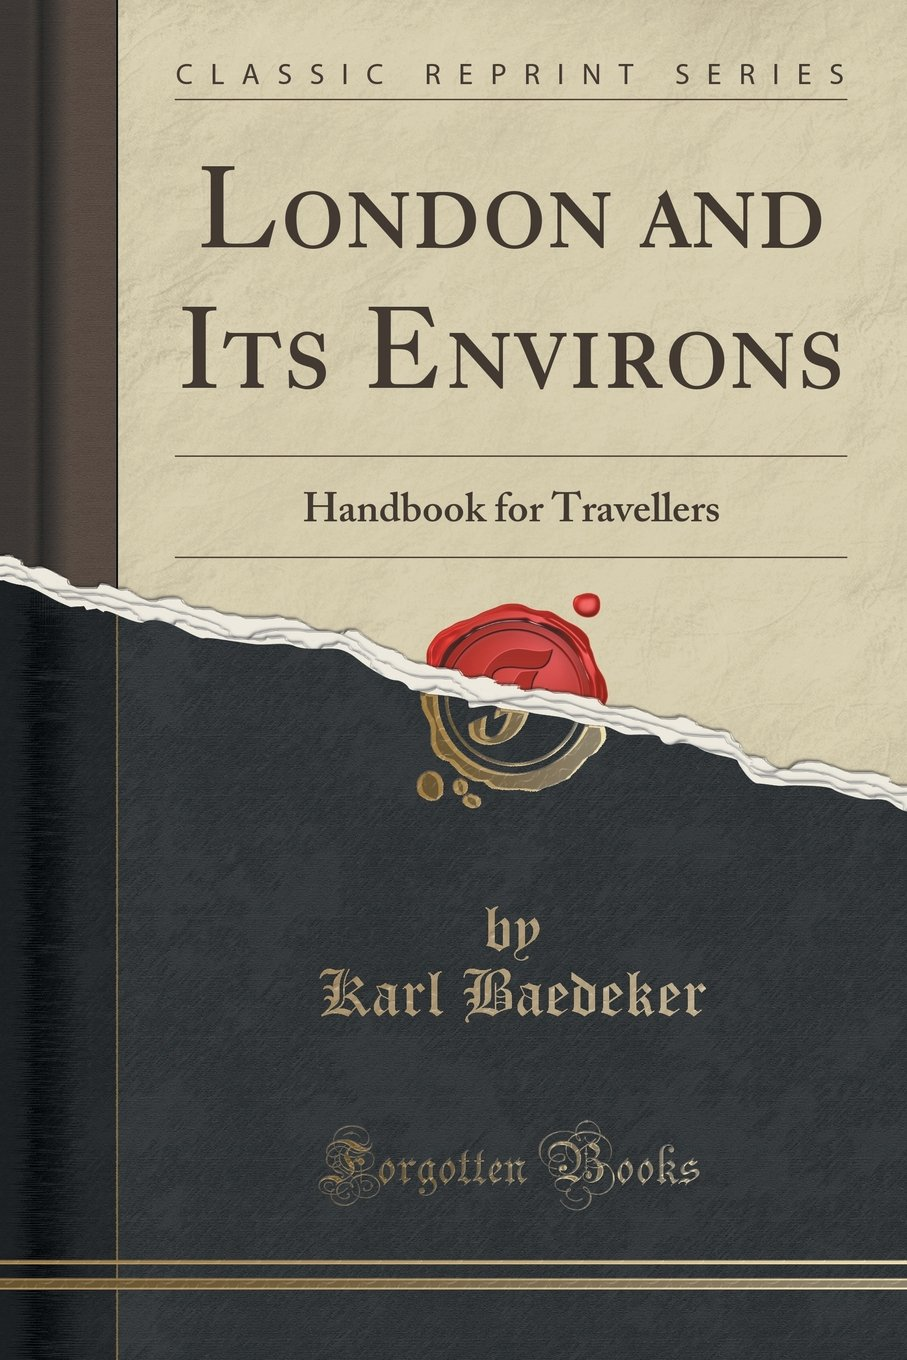 London and Its Environs: Handbook for Travellers (Classic Reprint)